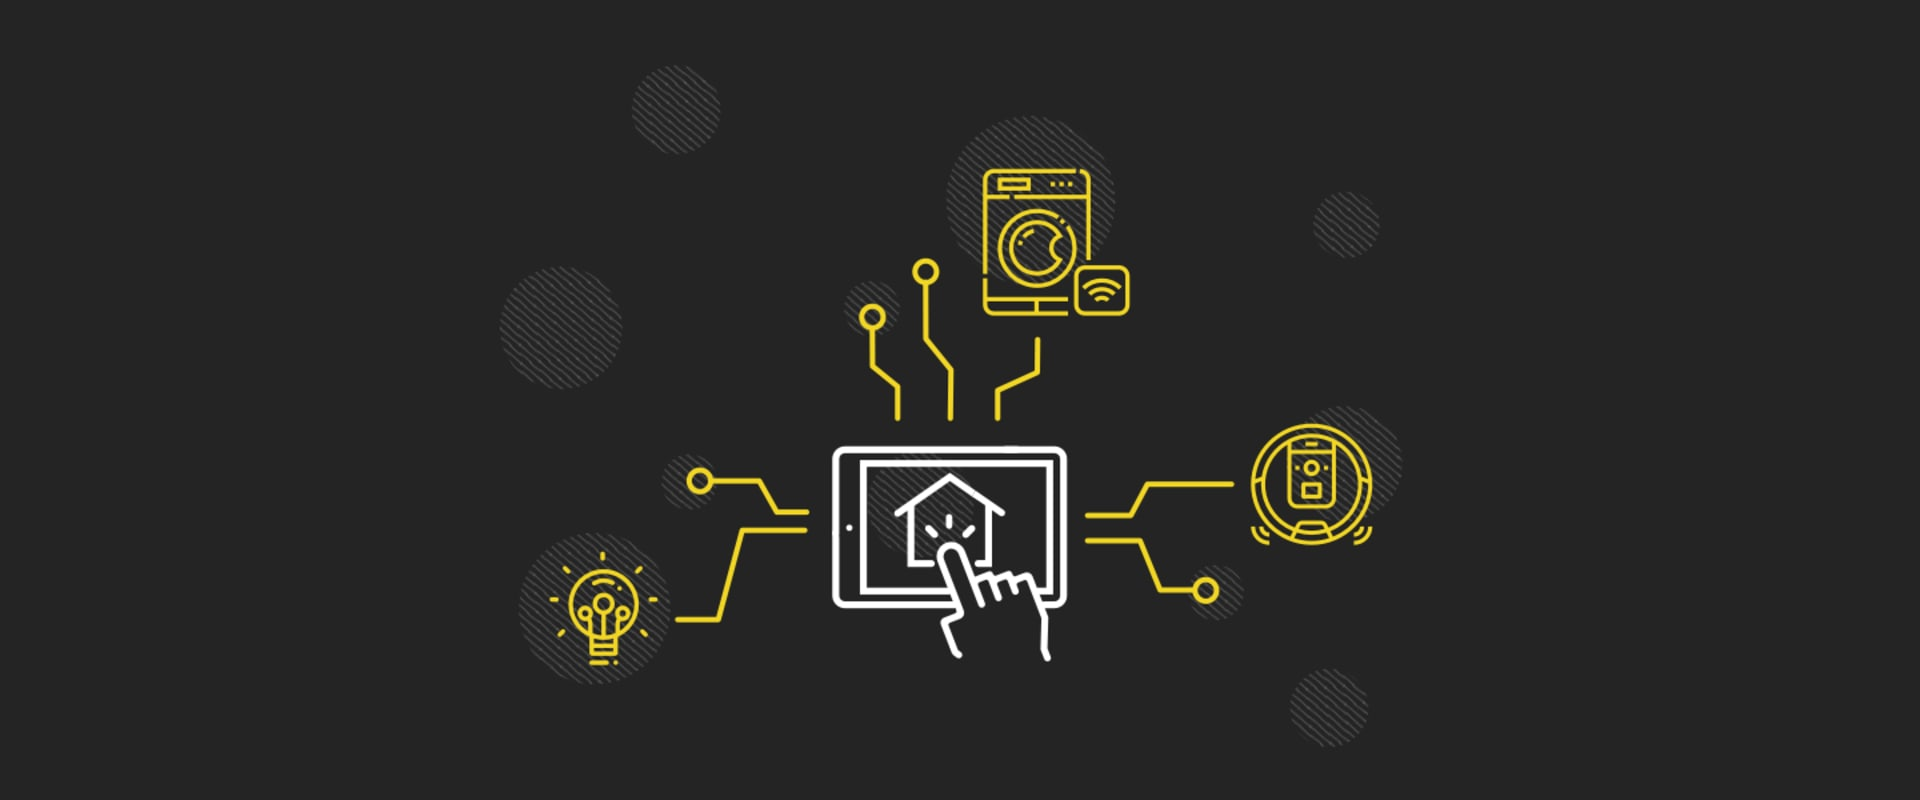 AWS IoT – mass device control for home and industry